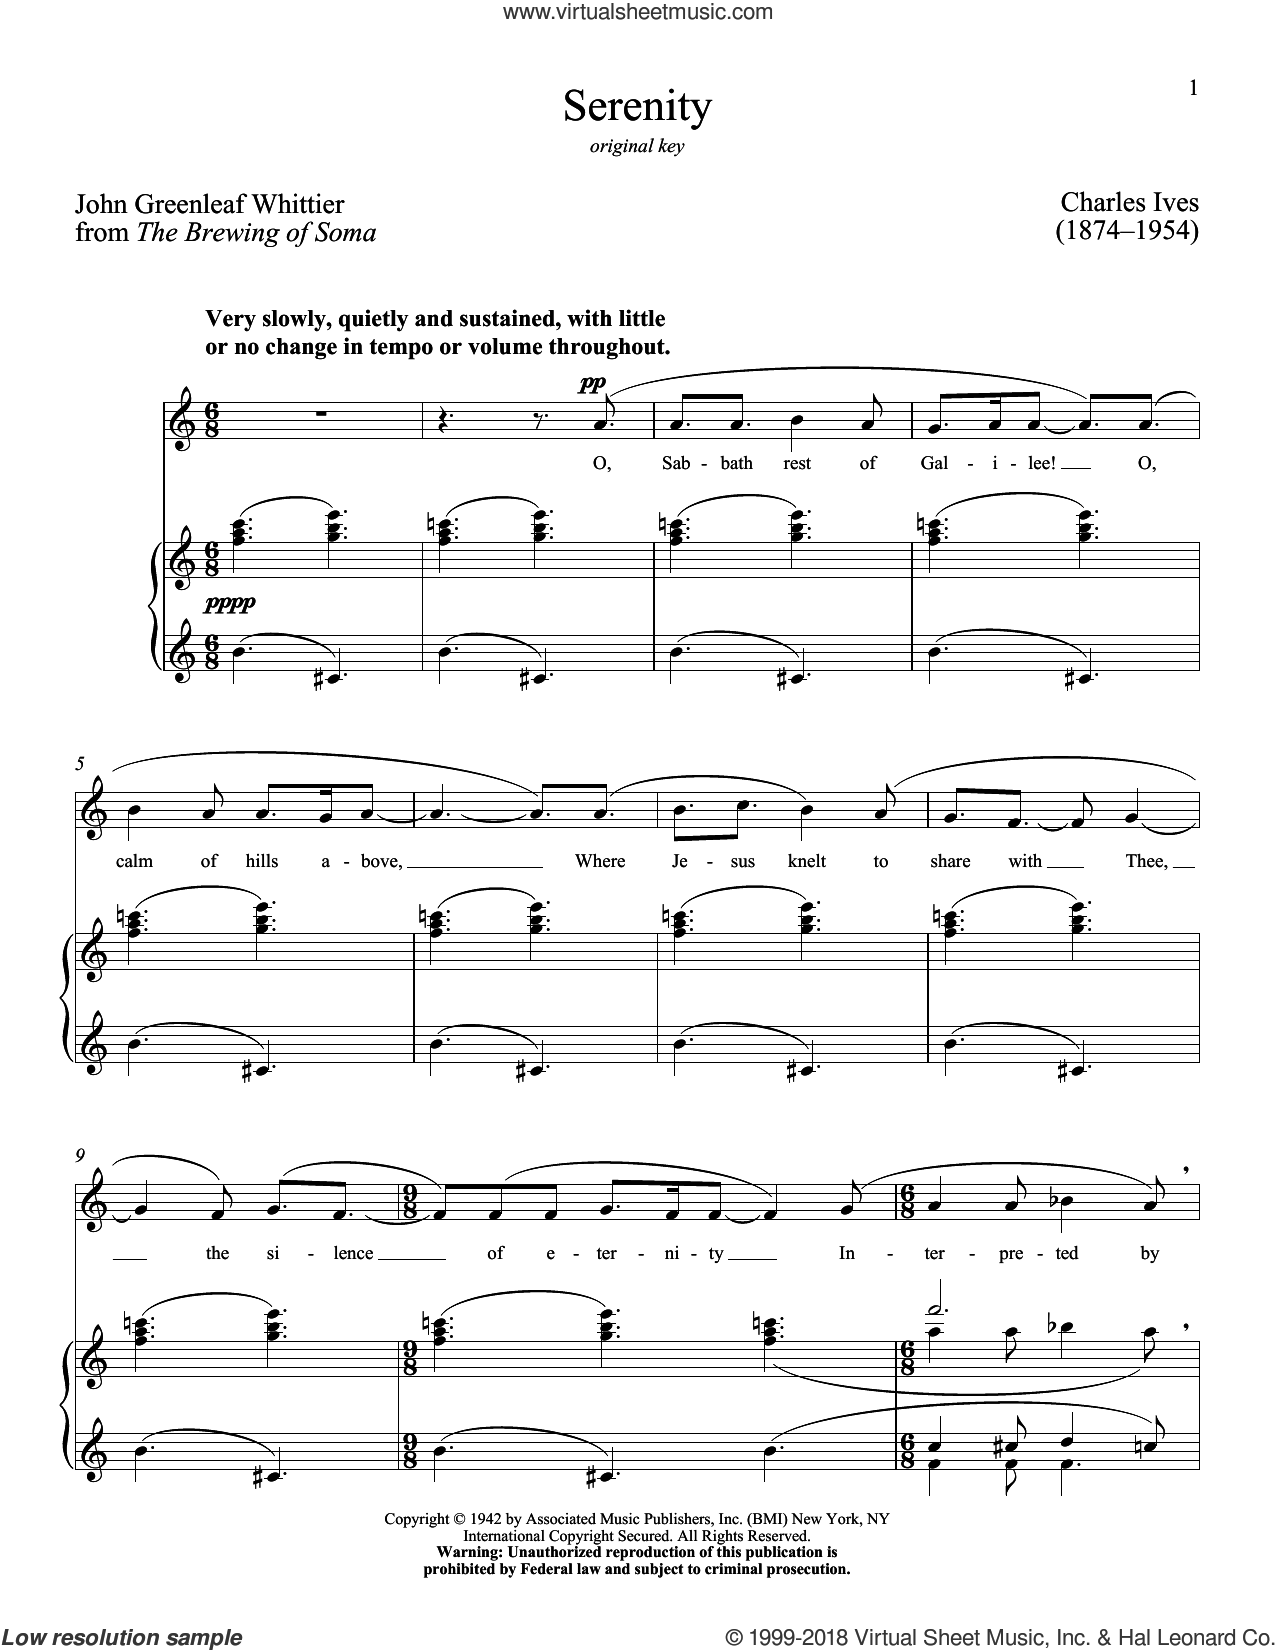 Serenity sheet music for voice and piano (High Voice) by Richard Walters, Charles Ives and John Greenleaf Whittier, classical score, intermediate